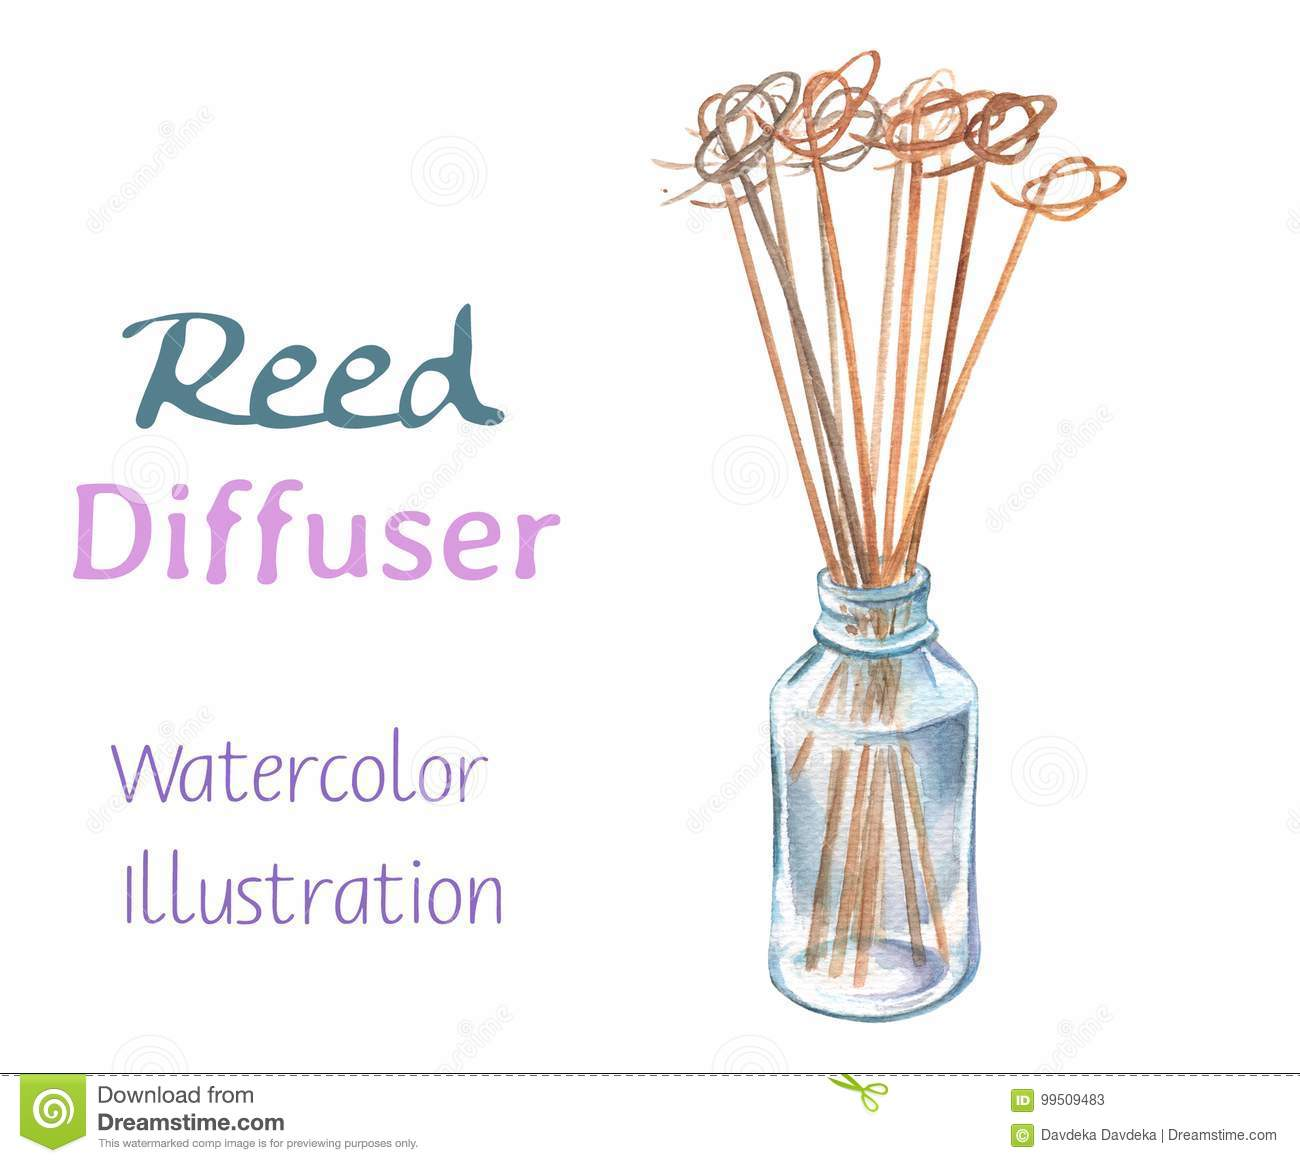 Commercial Scent Diffuser >> Scented Cartoons, Illustrations & Vector Stock Images - 4327 Pictures to download from ...